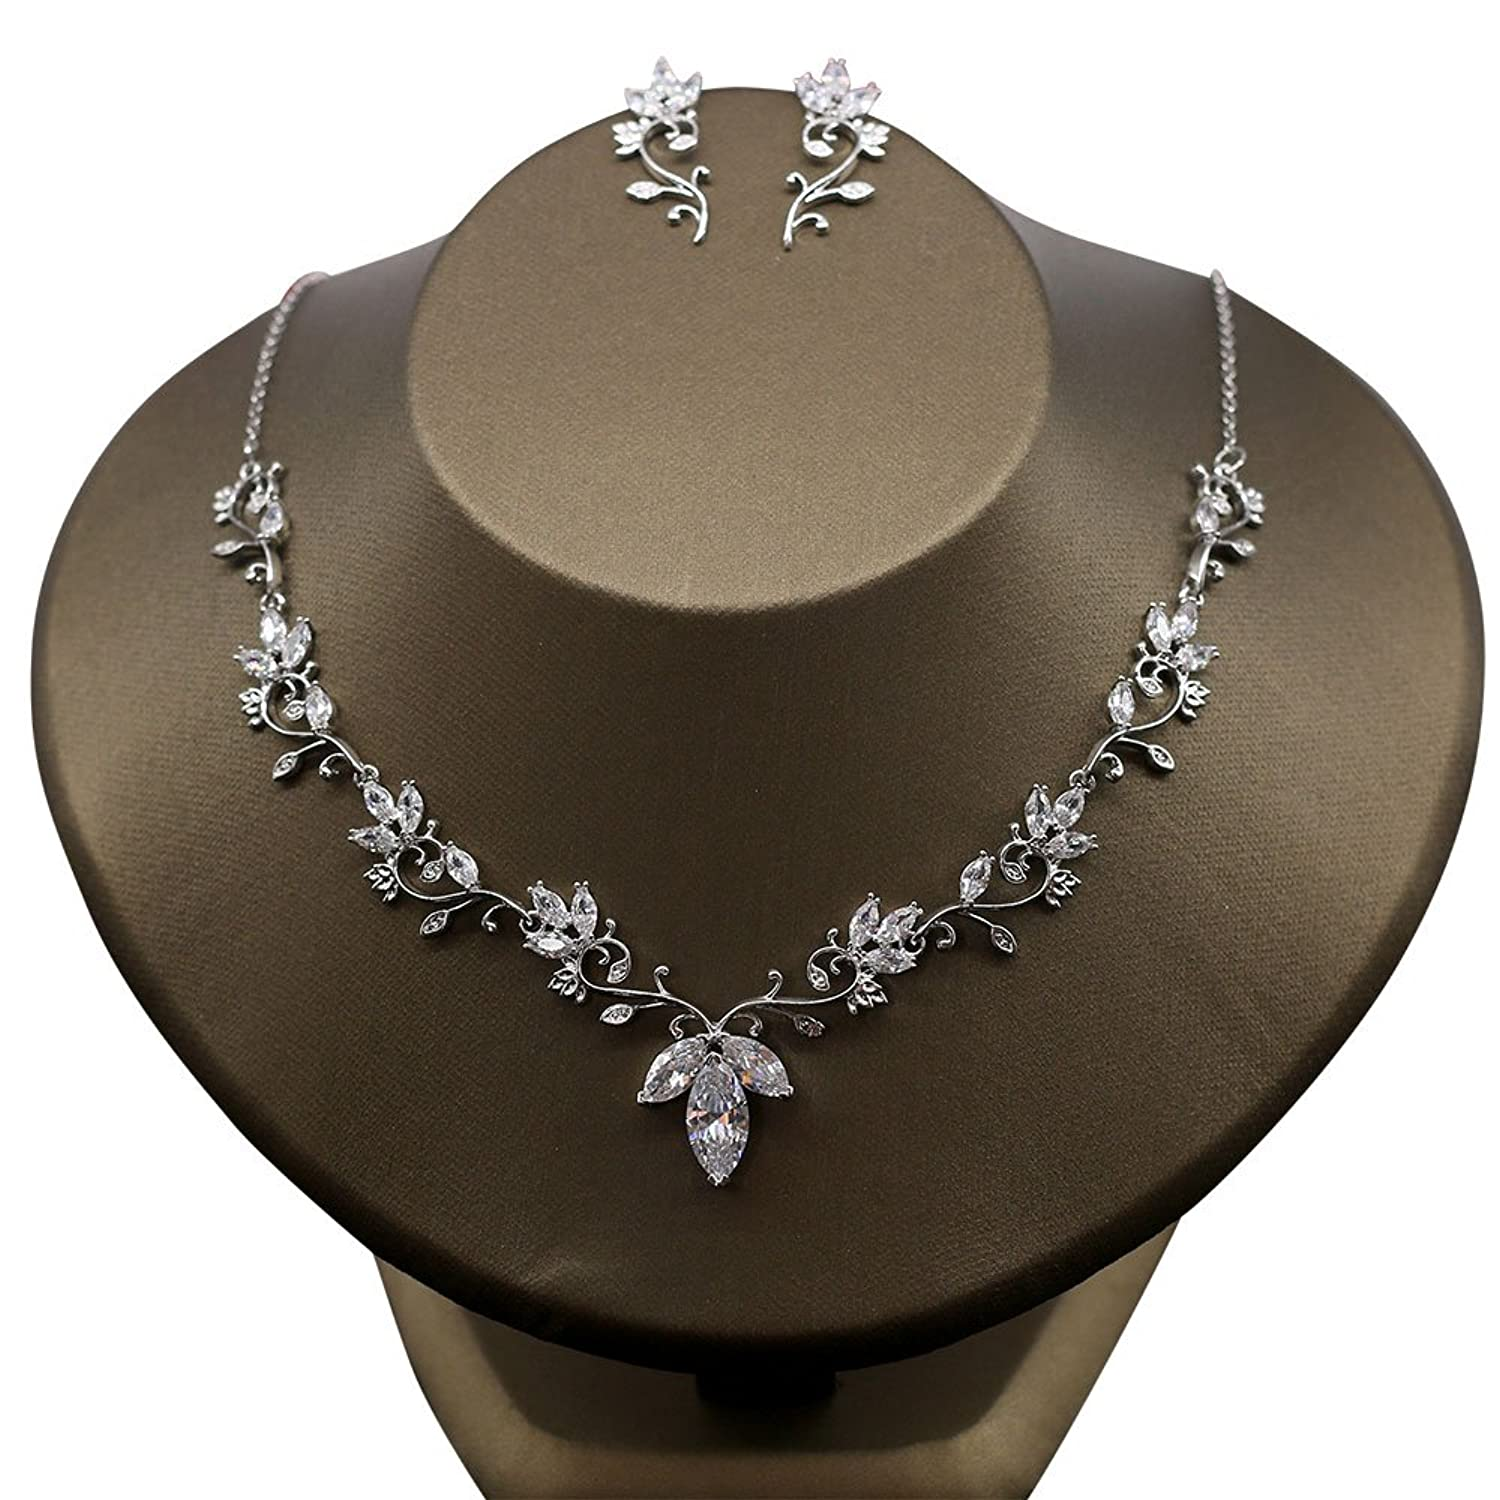 Kanrome Marquise-Cut Zircon Necklace Earrings Jewelry Sets Bridal Wedding Choker Gift